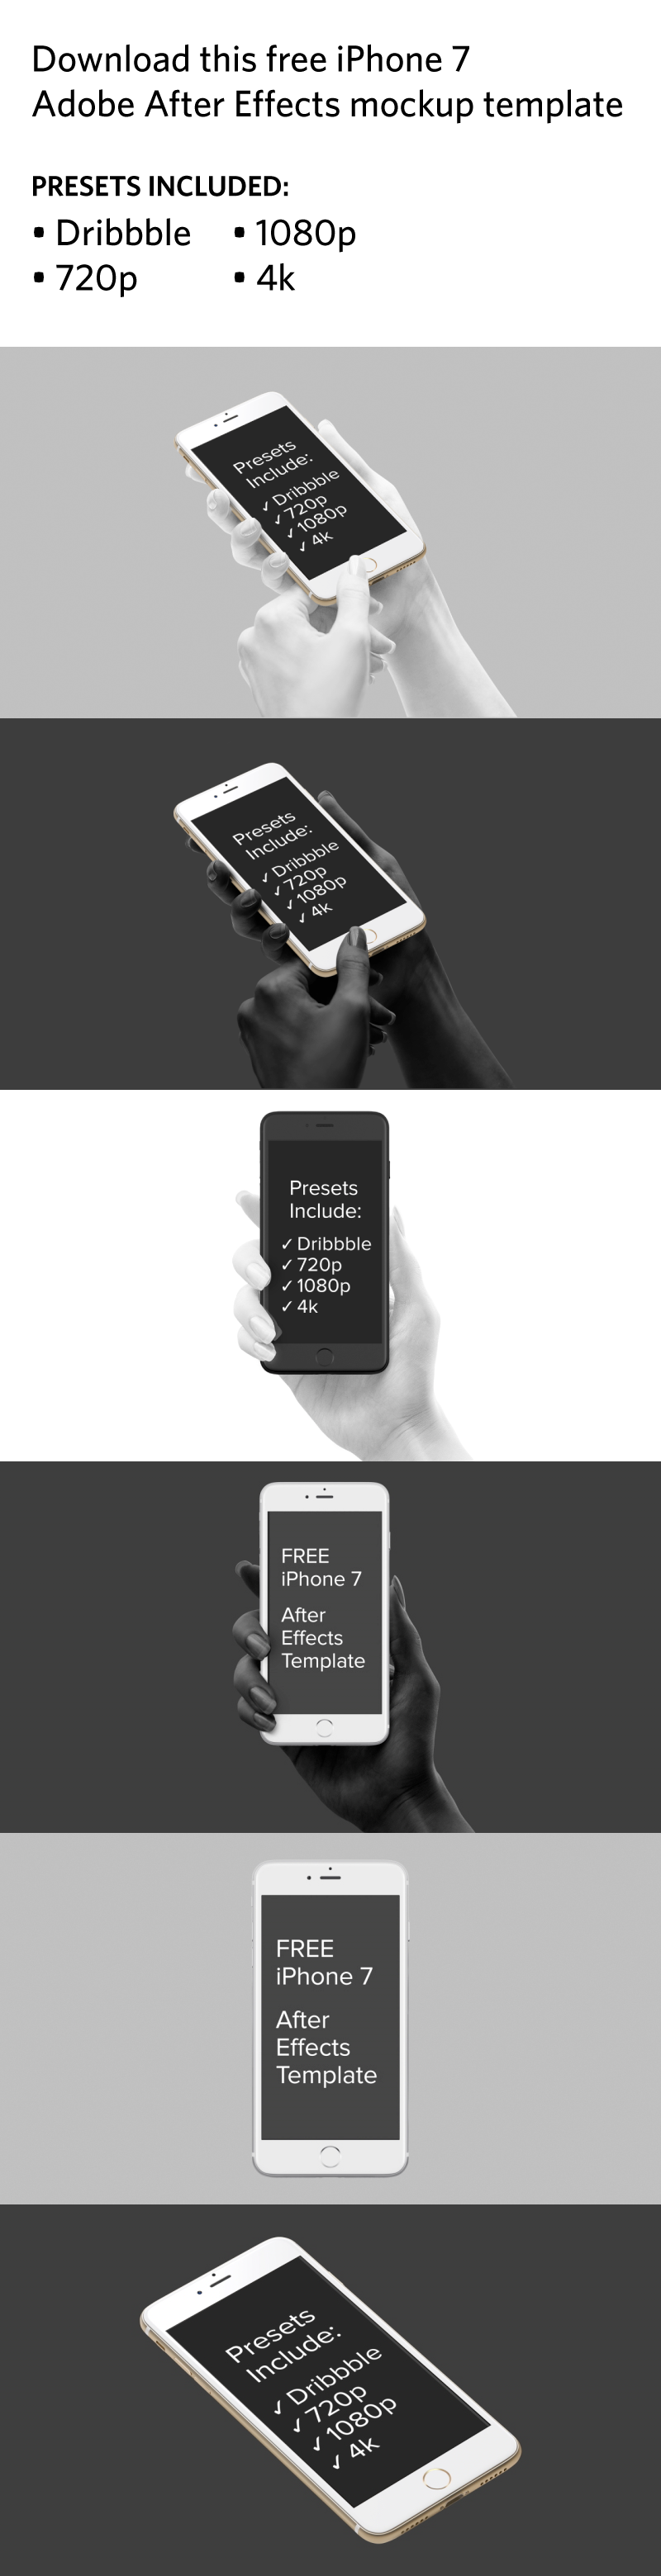 Download this free iPhone 7 Adobe After Effects mockup template ...